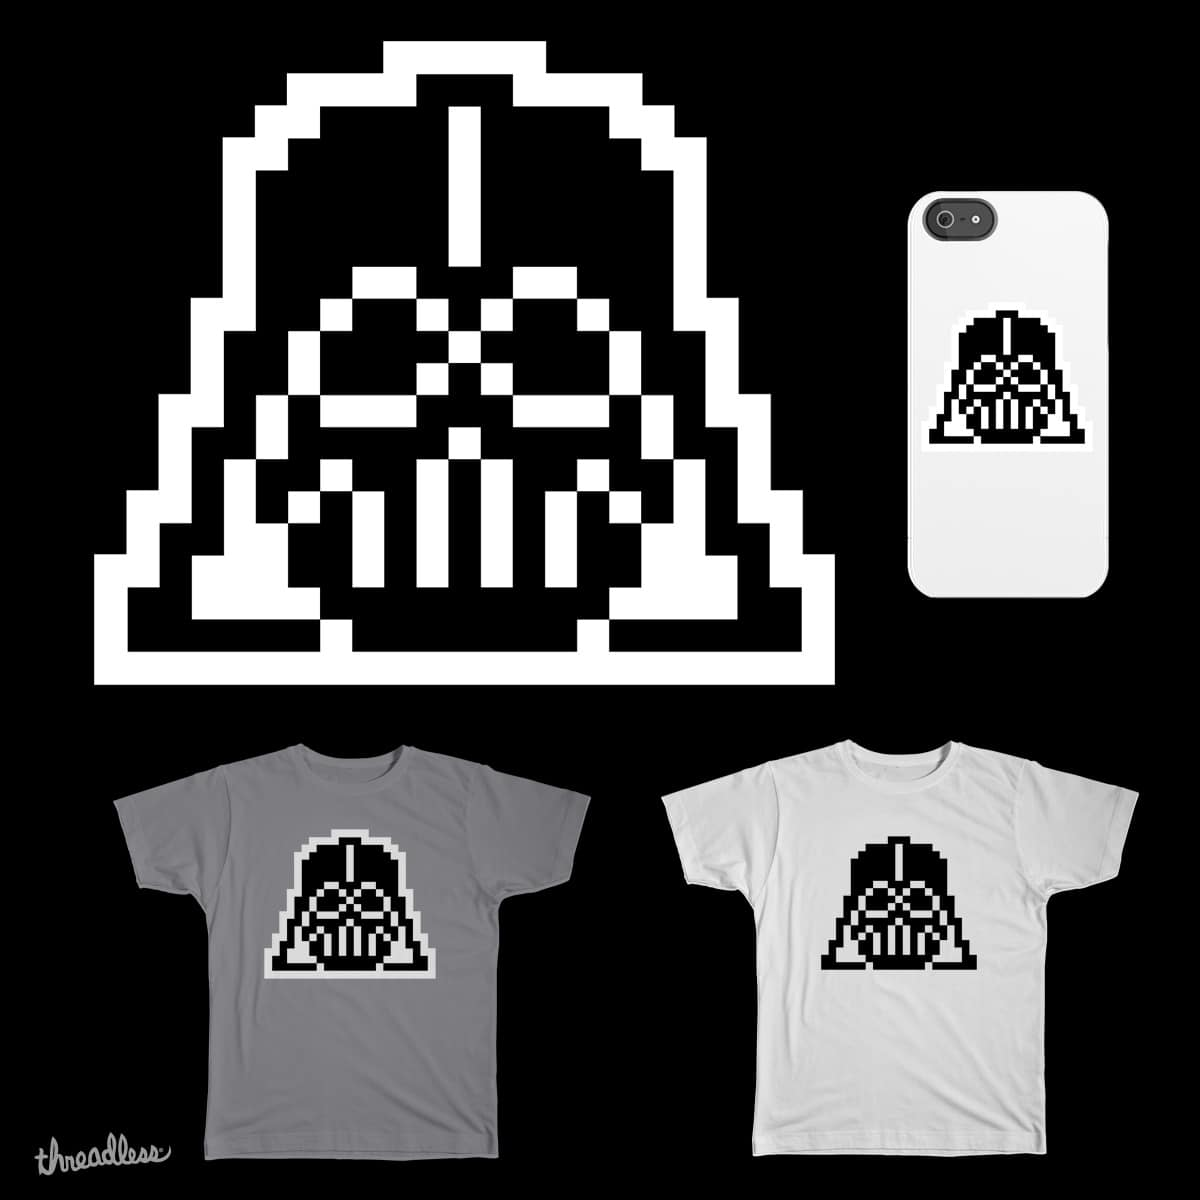 get pixelvaded. by d_cono on Threadless